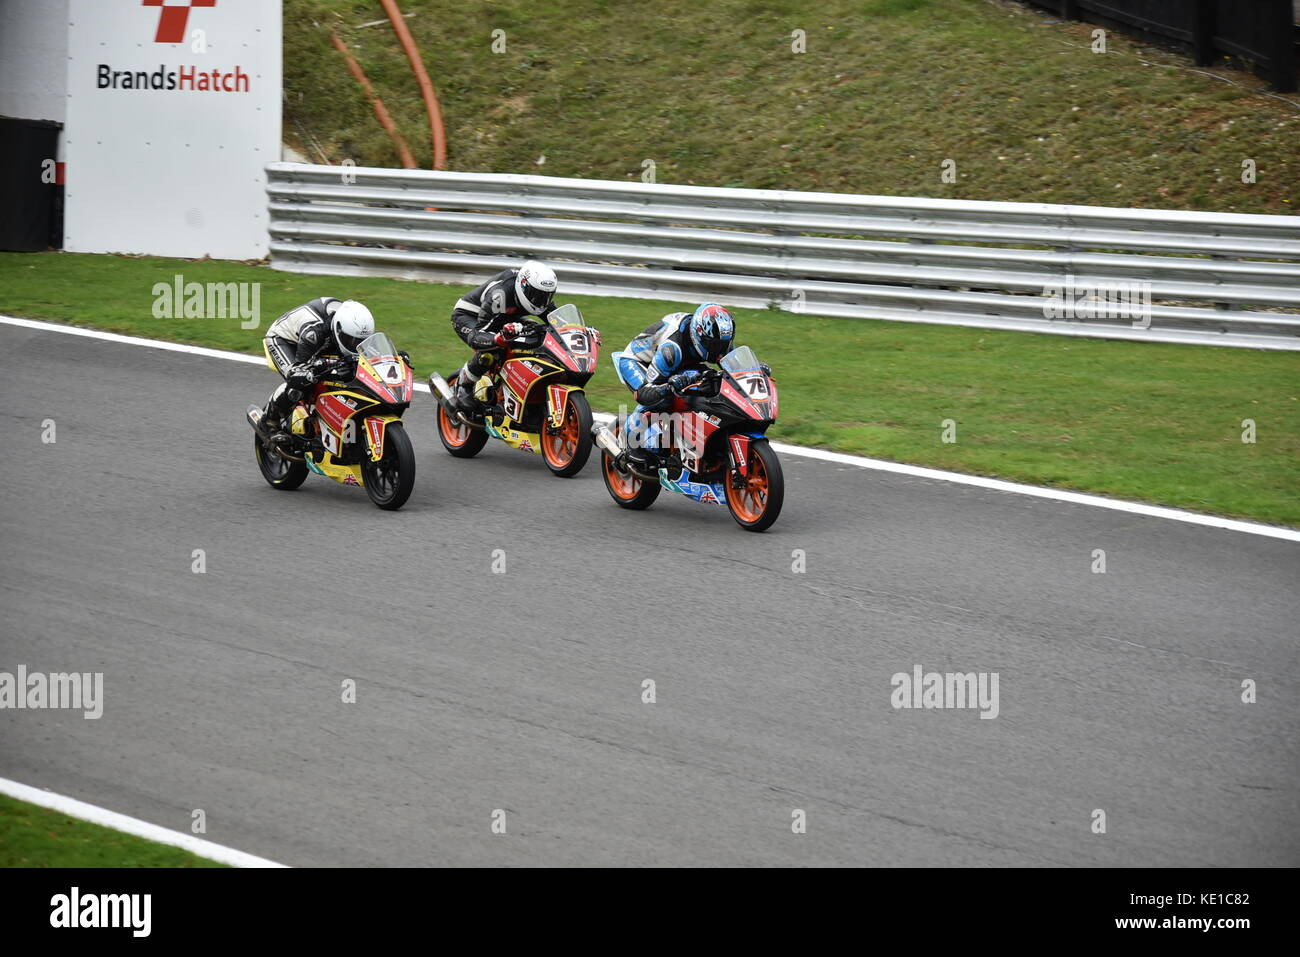 British Superbikes meeting KTM Cup - Stock Image